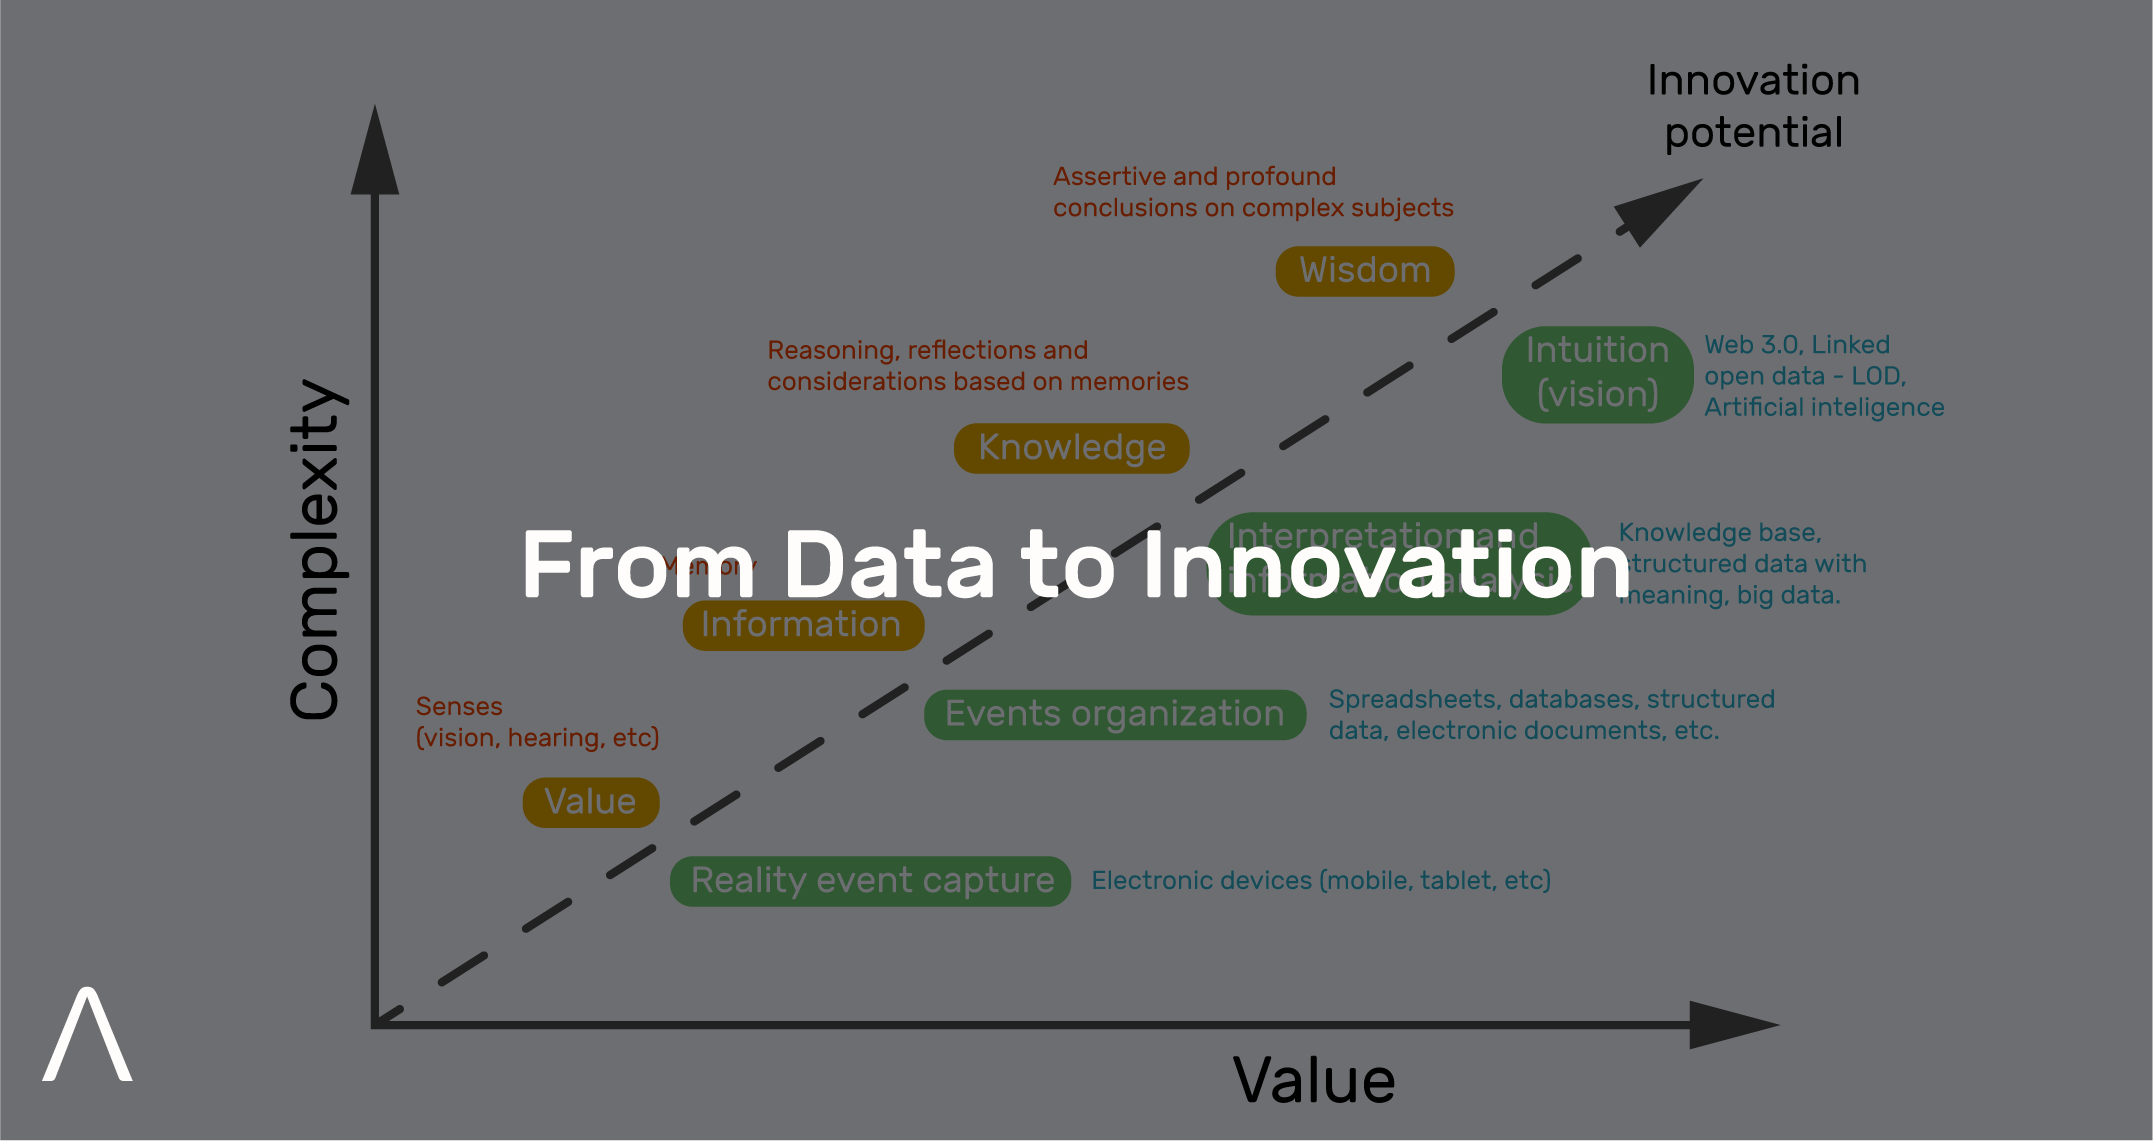 From Data to Innovation